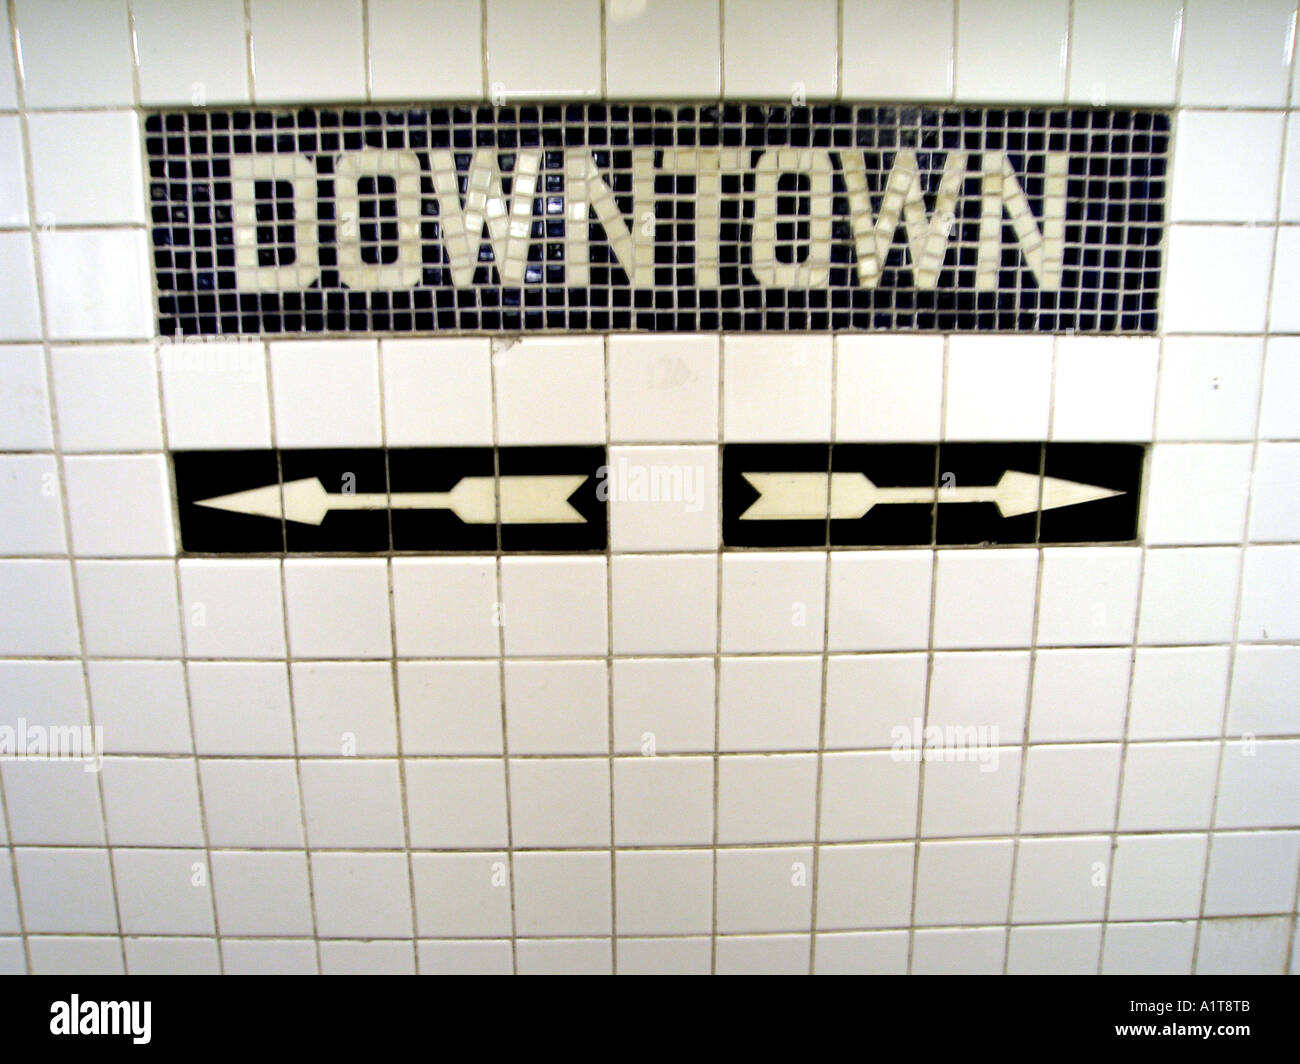 Tile mosaic downtown sign on the enterance to the subway in new york tile mosaic downtown sign on the enterance to the subway in new york city dailygadgetfo Choice Image